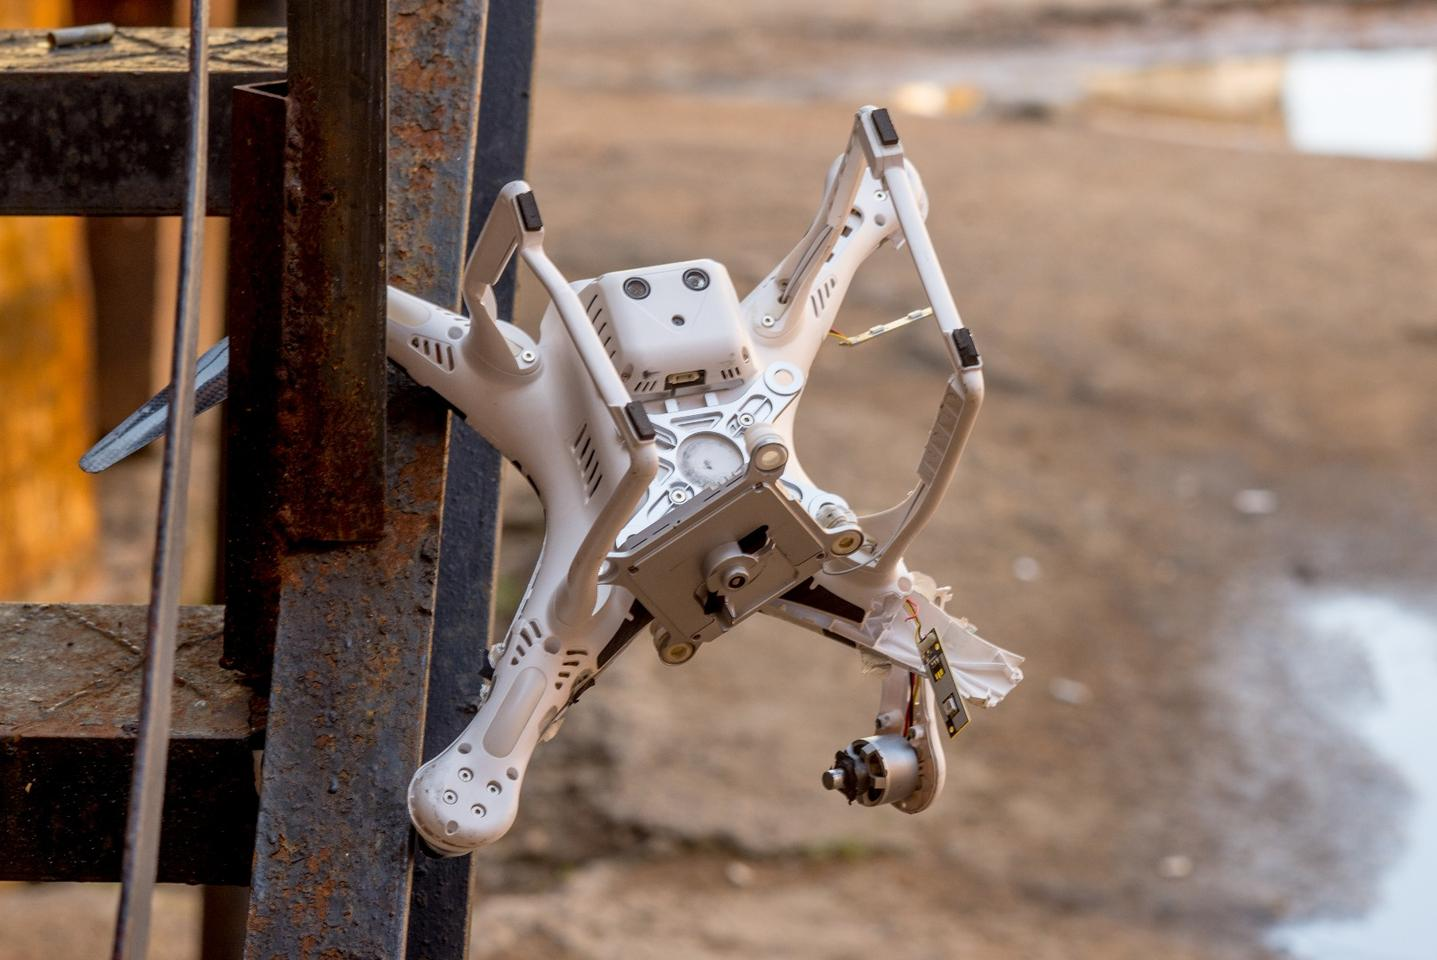 Crashes are currentlypar for the course when training autonomous drones, but perhaps they don't have to be